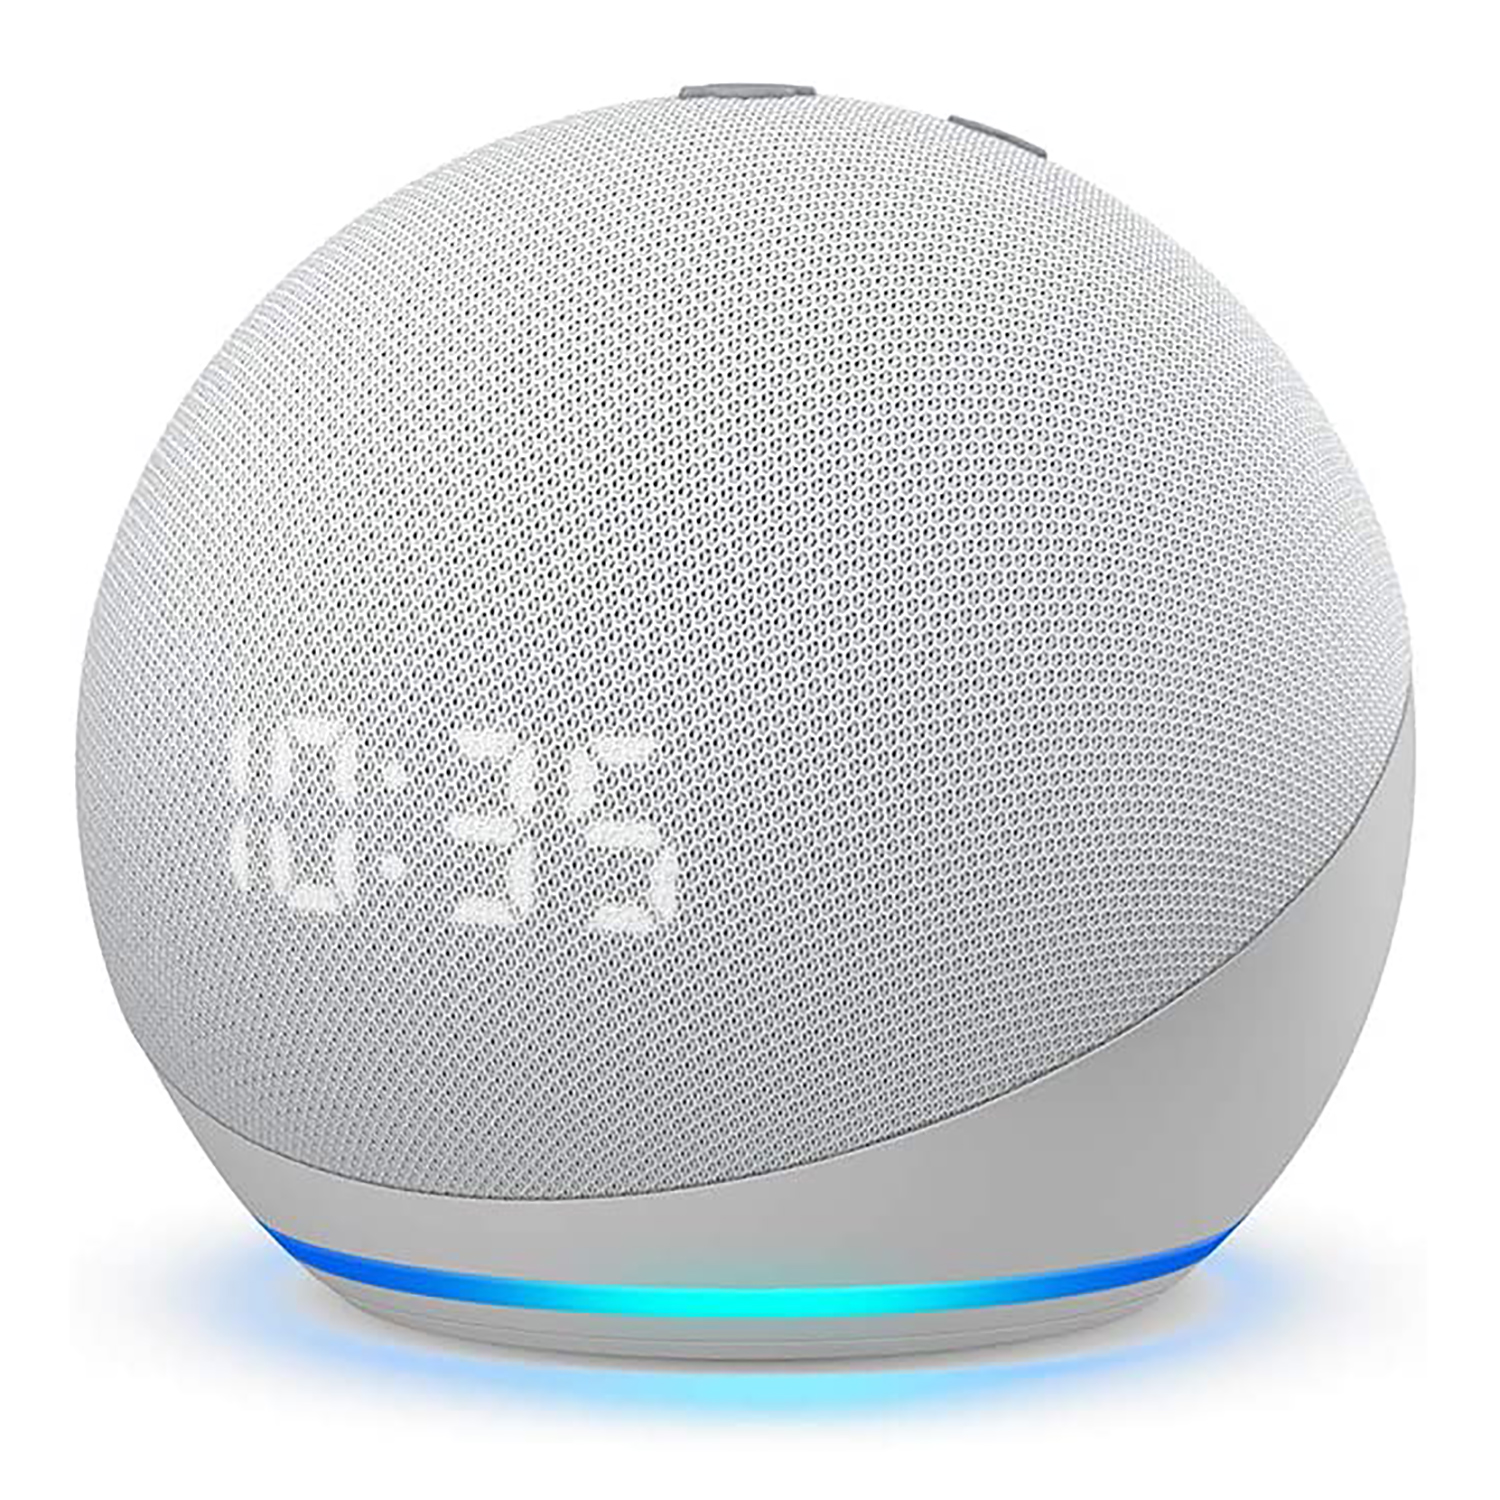 Echo Dot with Clock (4th Generation)